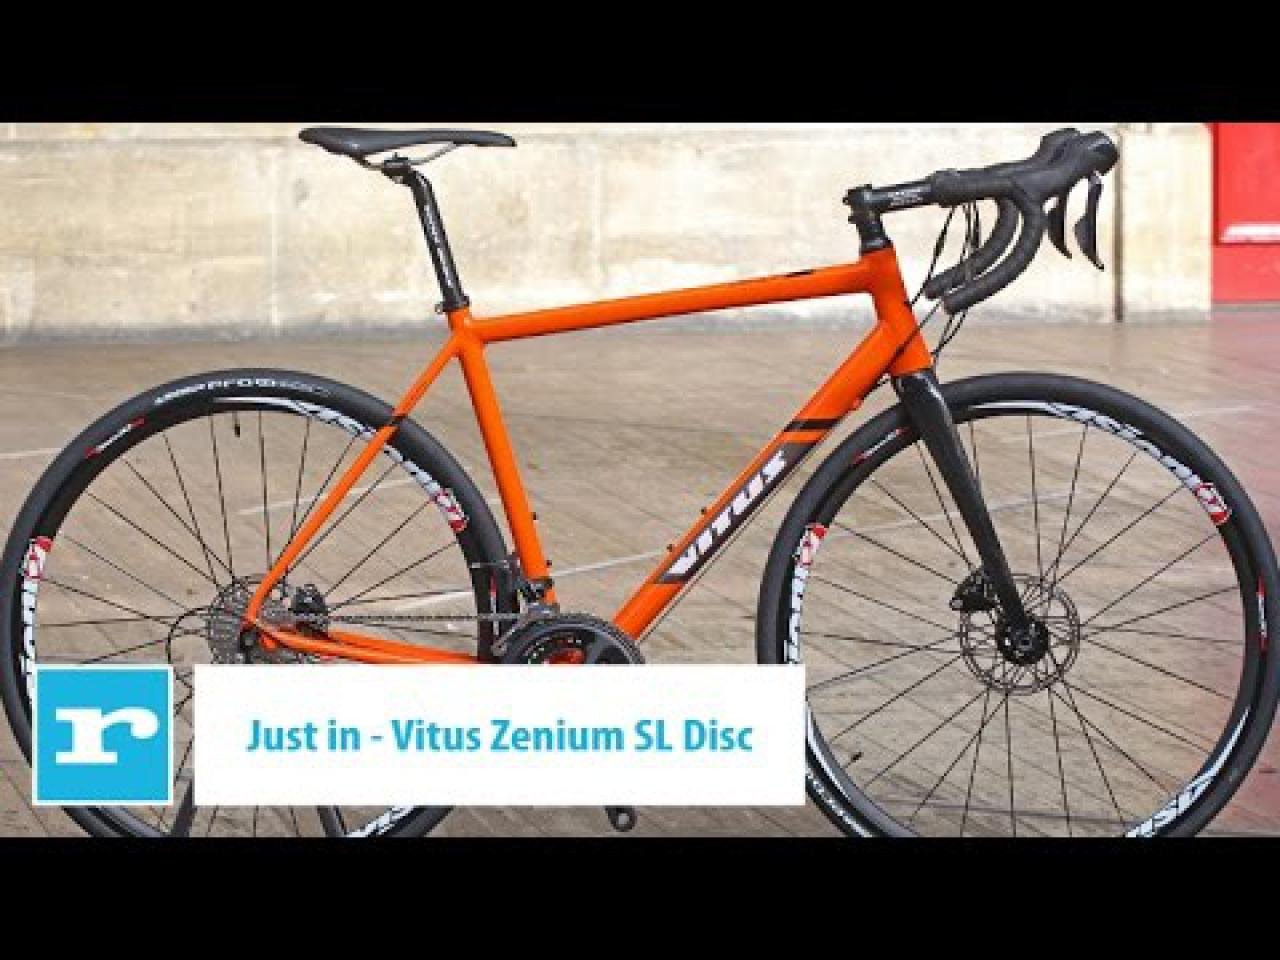 b34444a9c Video Just In  Vitus Zenium SL Disc